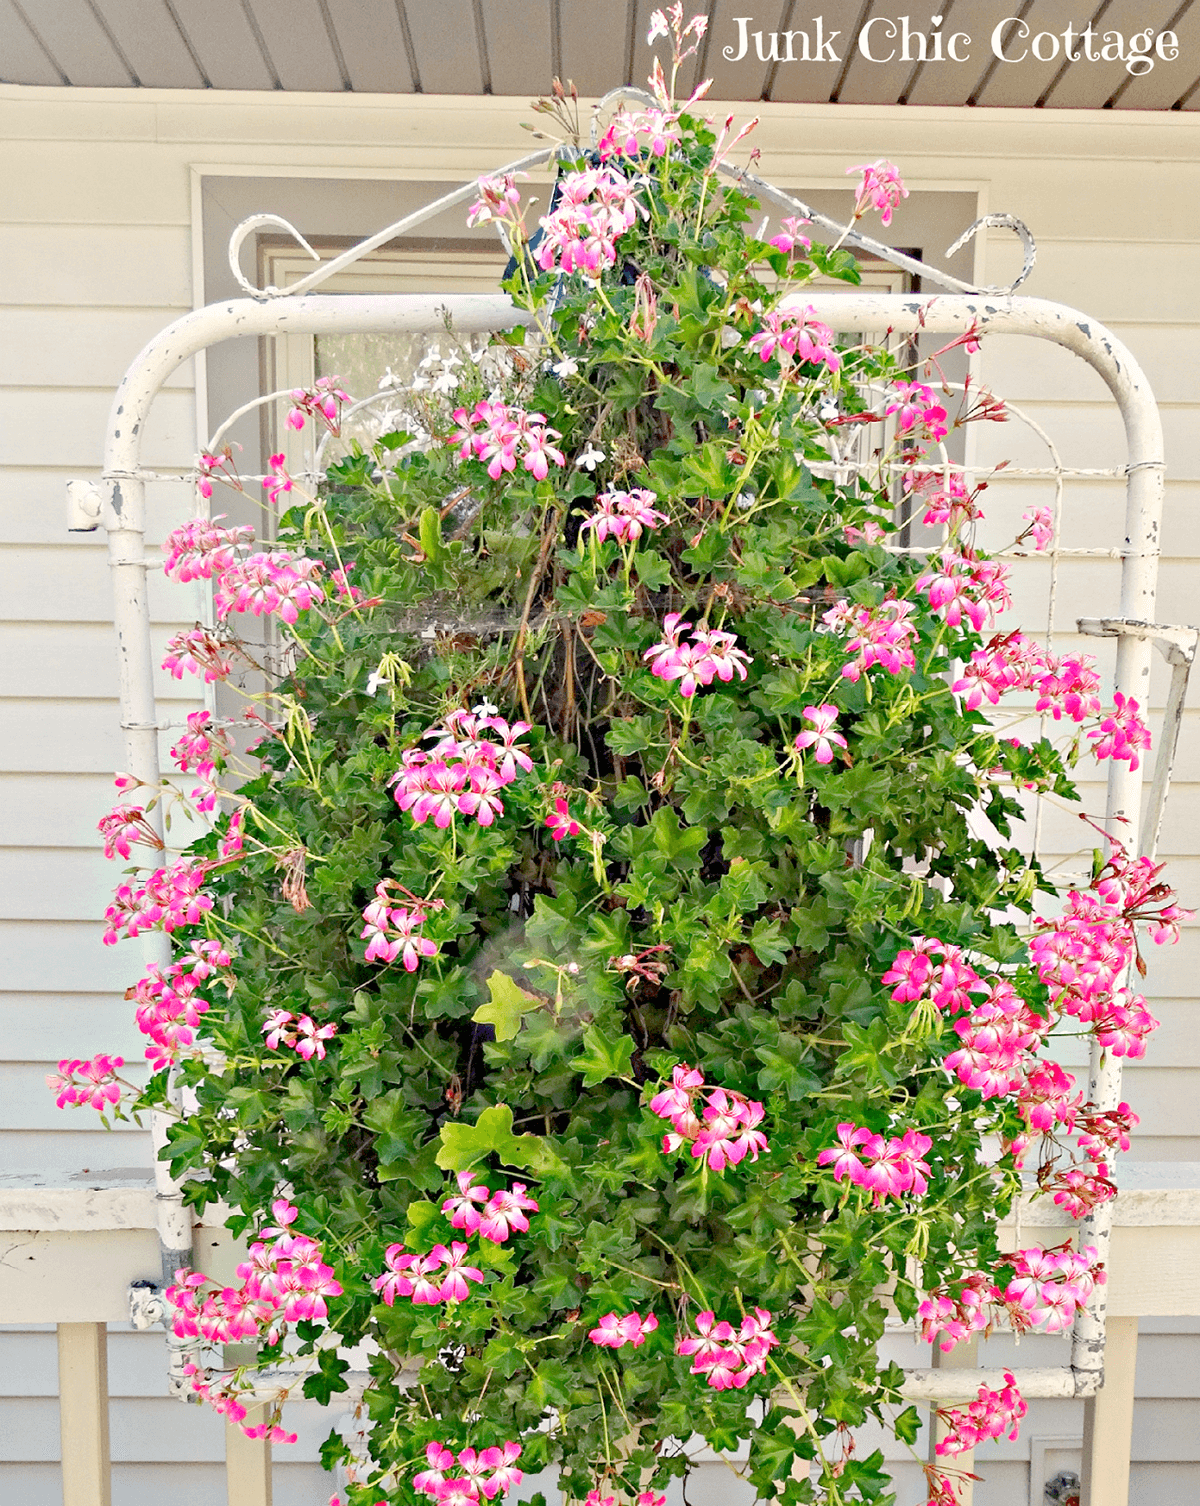 Upcycled Metal Gate for Hanging Flowers